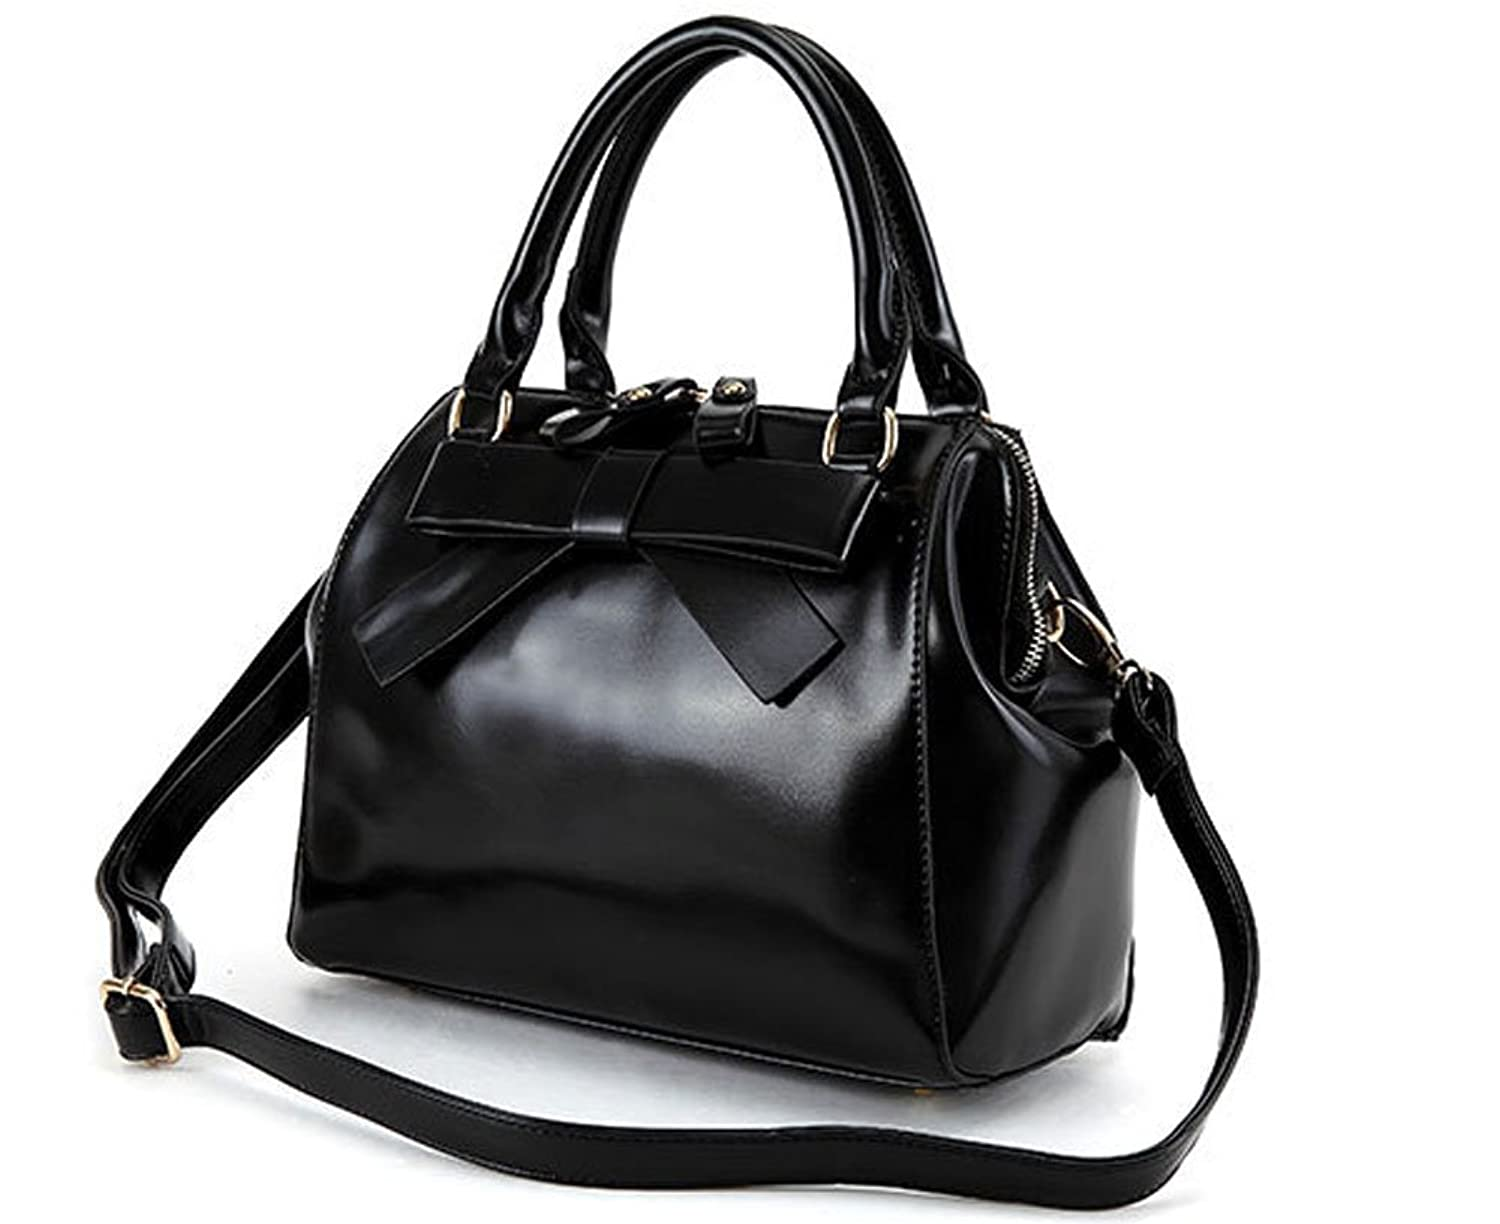 FLYING BIRDS Bow Women Totes Messenger Leather Handbags ZCBG46 (Black)